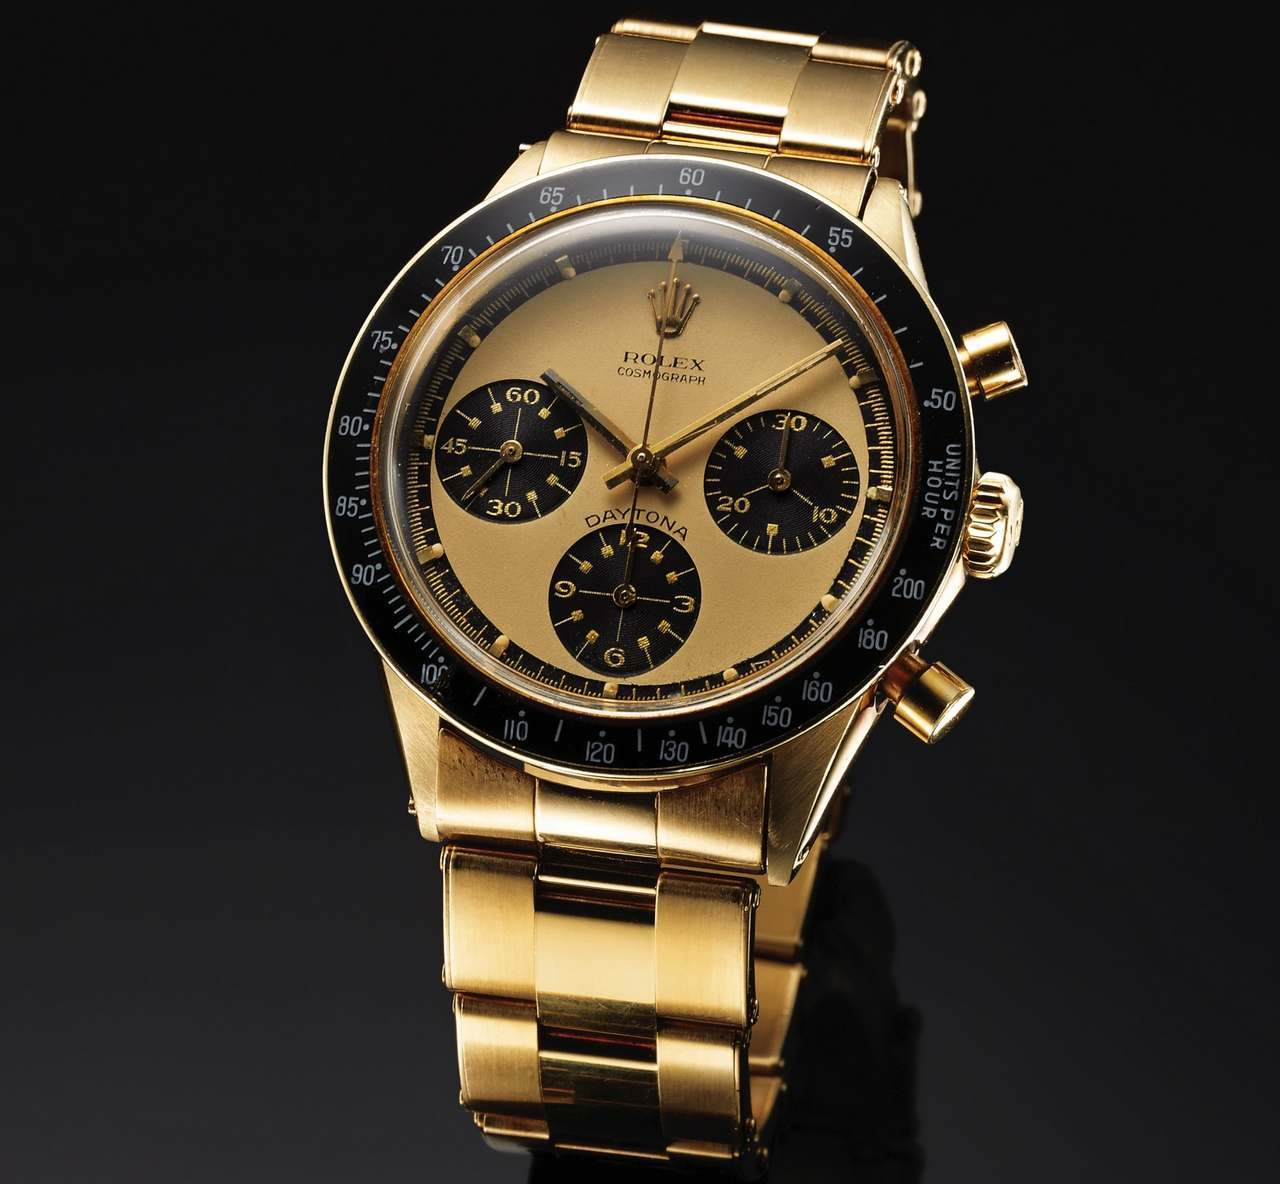 ROLEX REF. 6241 COSMOGRAPH DAYTONA PAUL NEWMAN 14K YELLOW GOLD Rolex, Cosmograph Daytona, No. 2084311, Ref. 6241-source-antiquorum_0-100